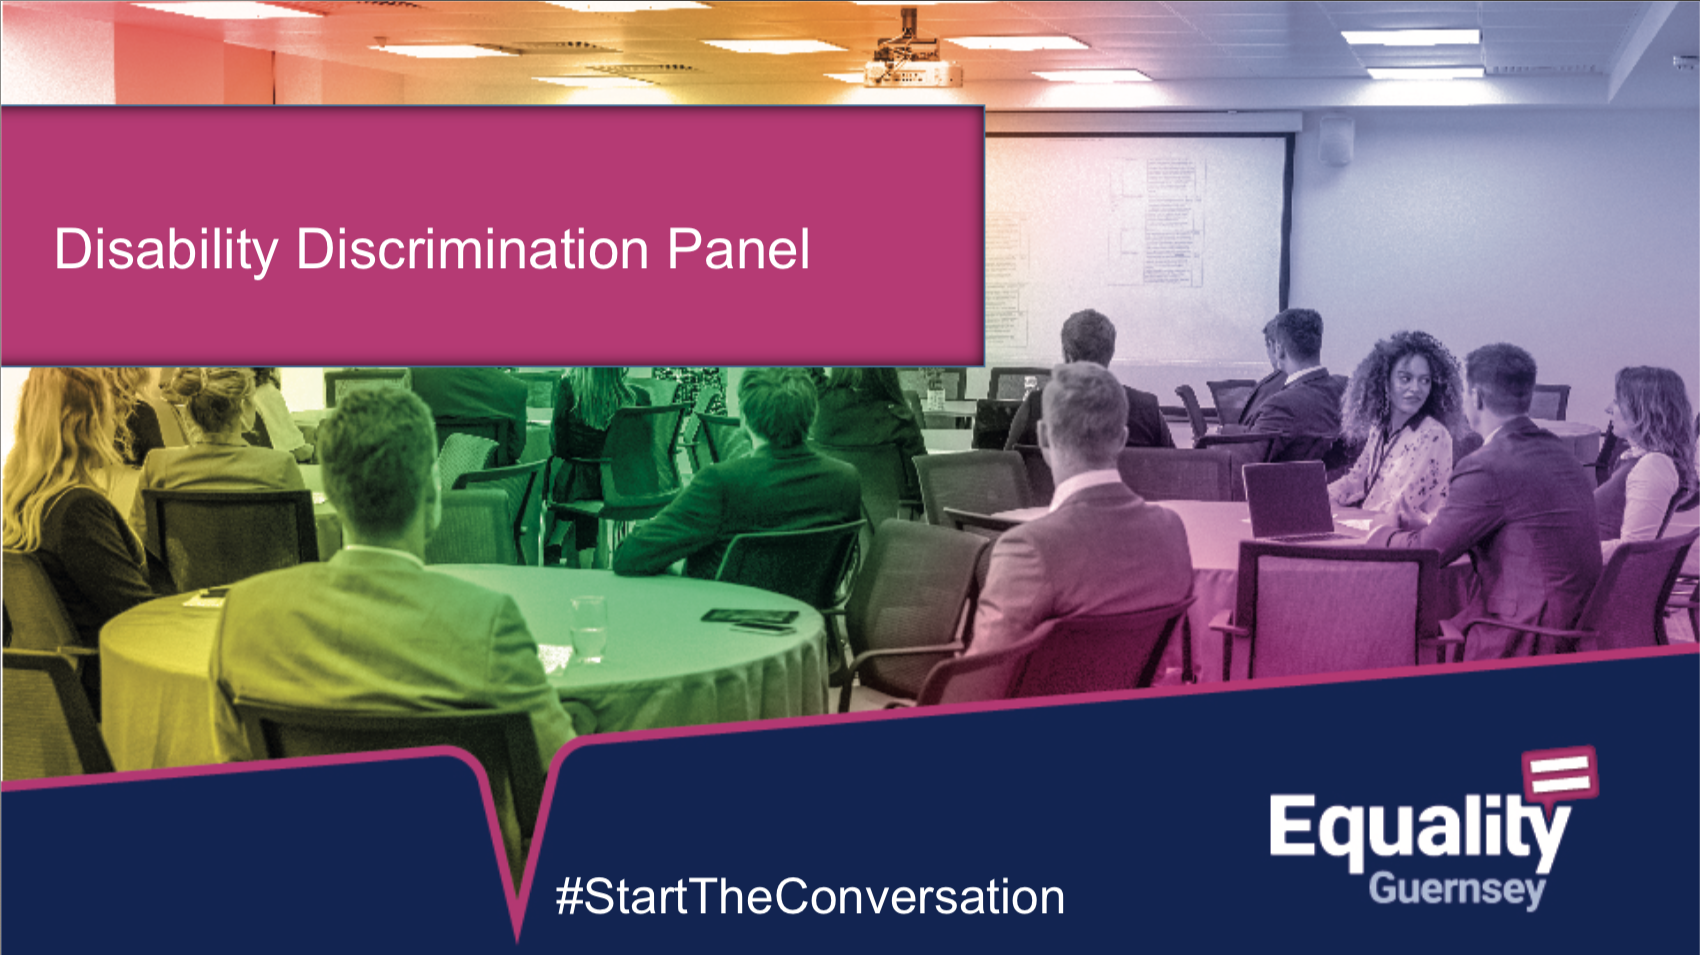 Disability Discrimination Panel slides